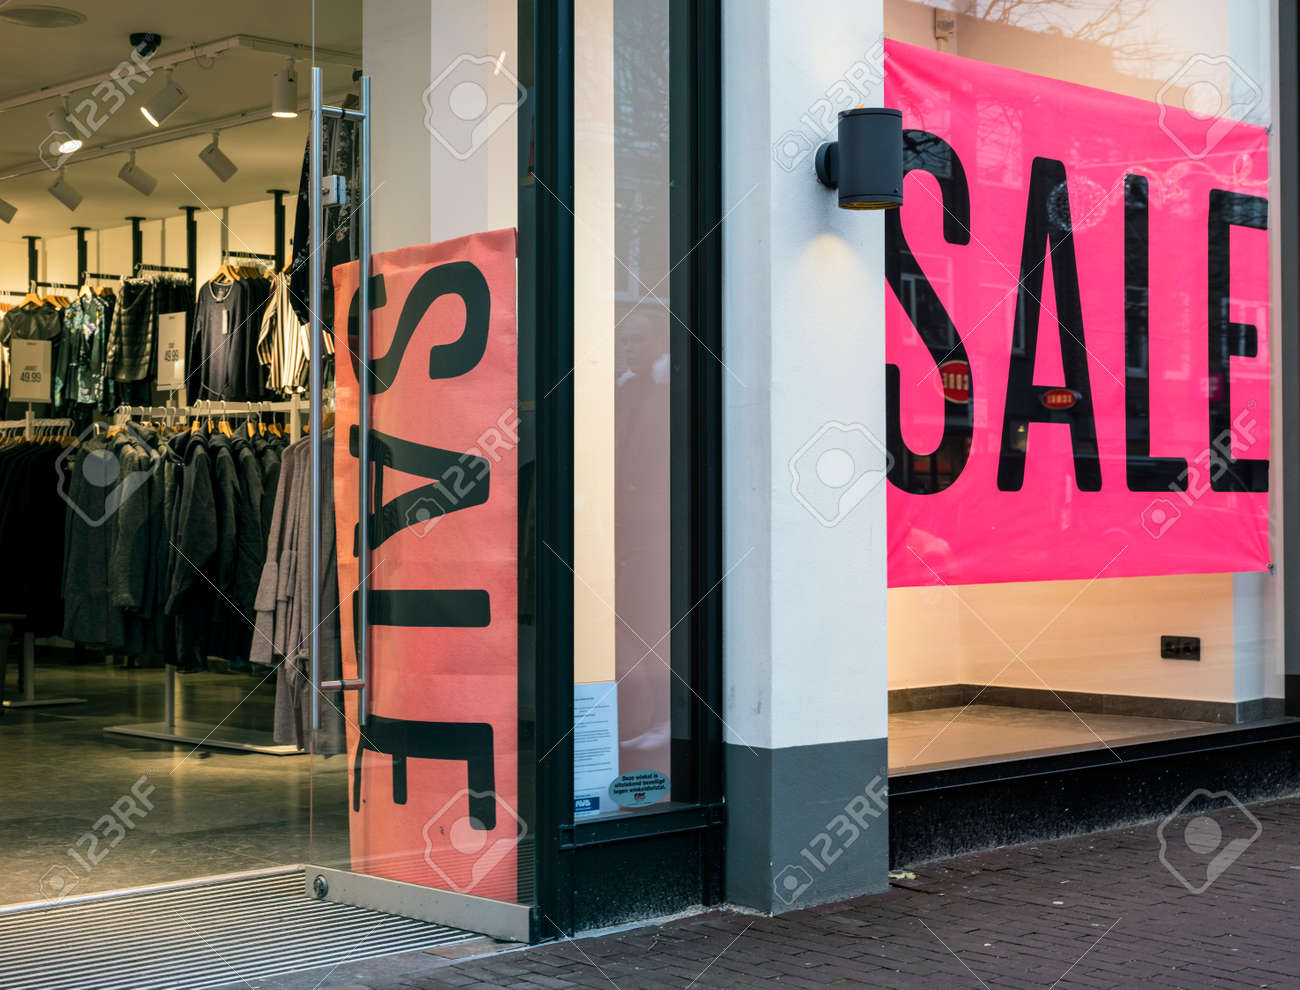 c4b693d0f4a Stock Photo - the word sale in shop window of clothing store with open door